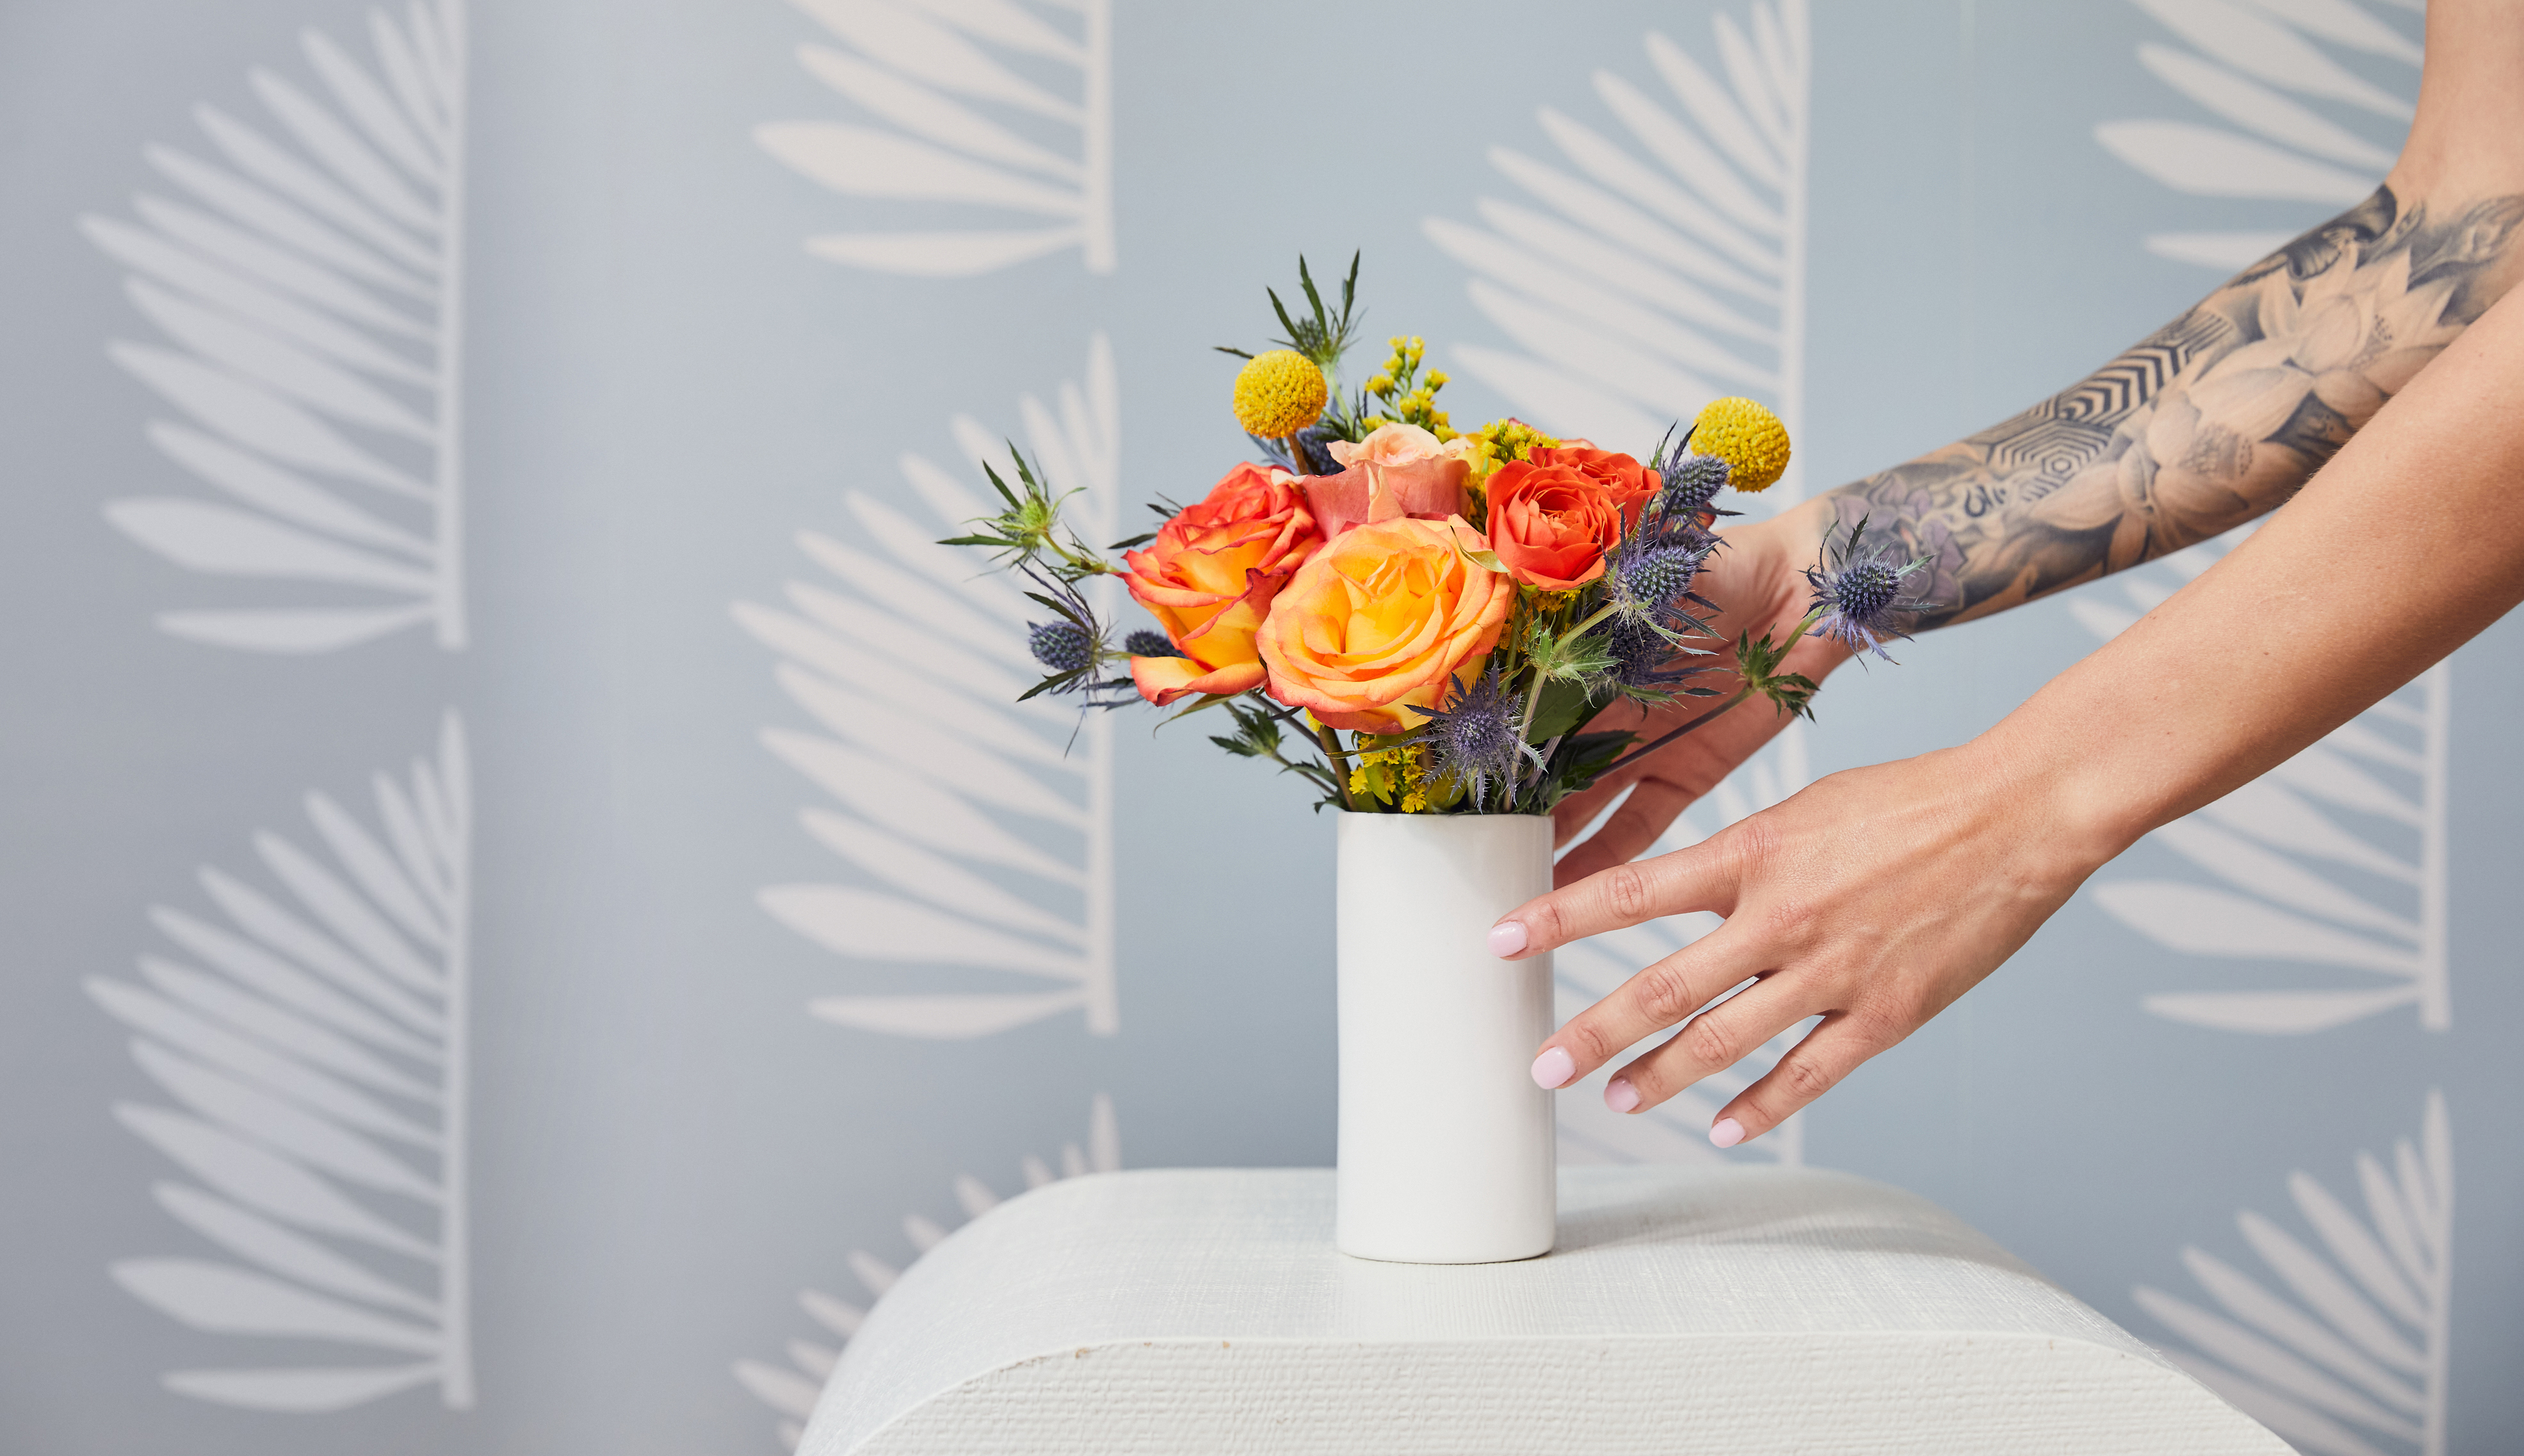 Bouquet of yellow flowers, orange flowers, and blue flowers in white vase